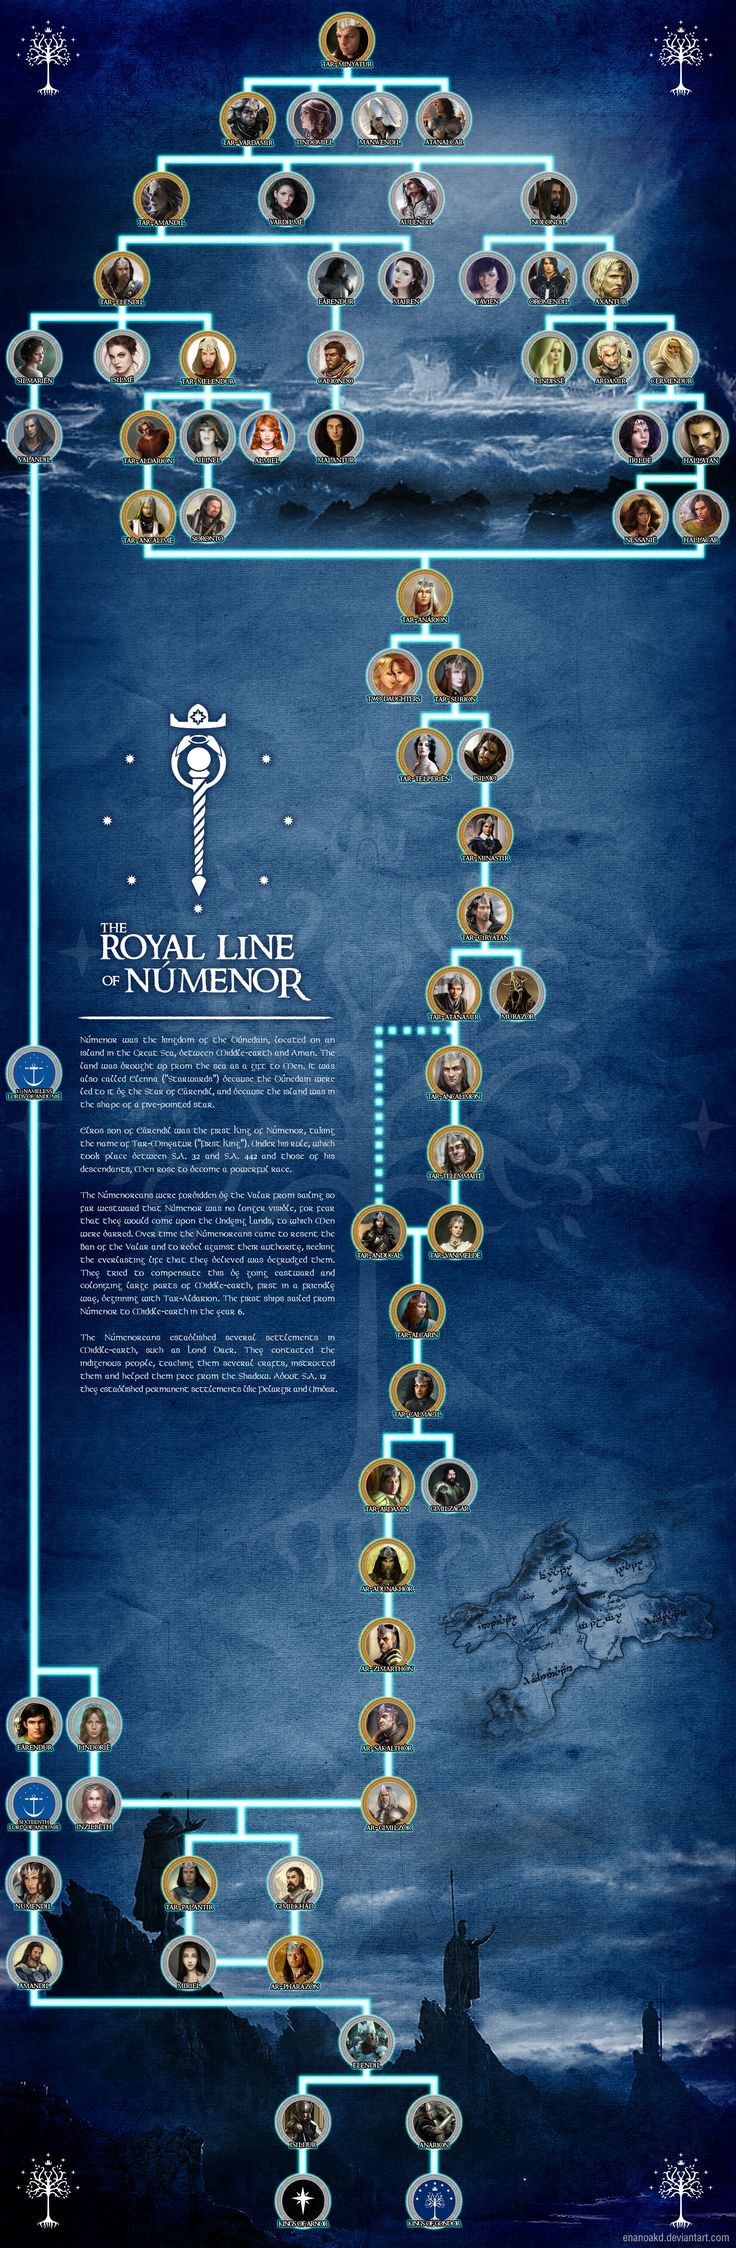 The Royal Line of Numenor by enanoakd.deviantart.com on @deviantART